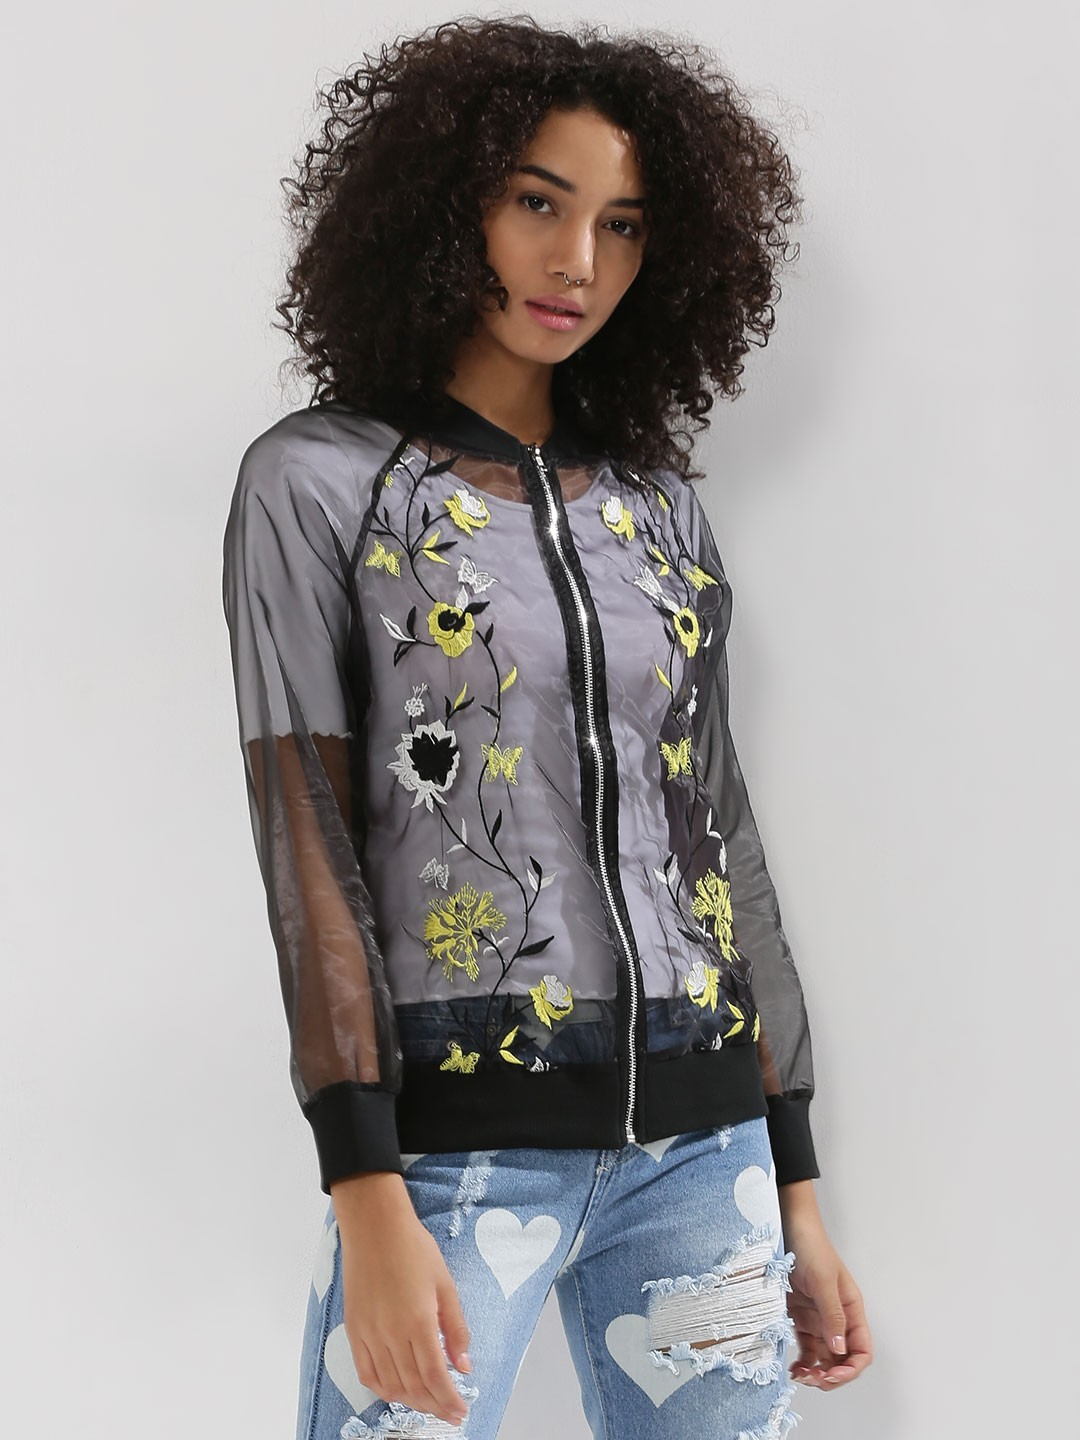 Buy Rena Love Floral Print Peplum Top For Women: Buy Rena Love Black Sheer Embroidered Bomber Jacket For